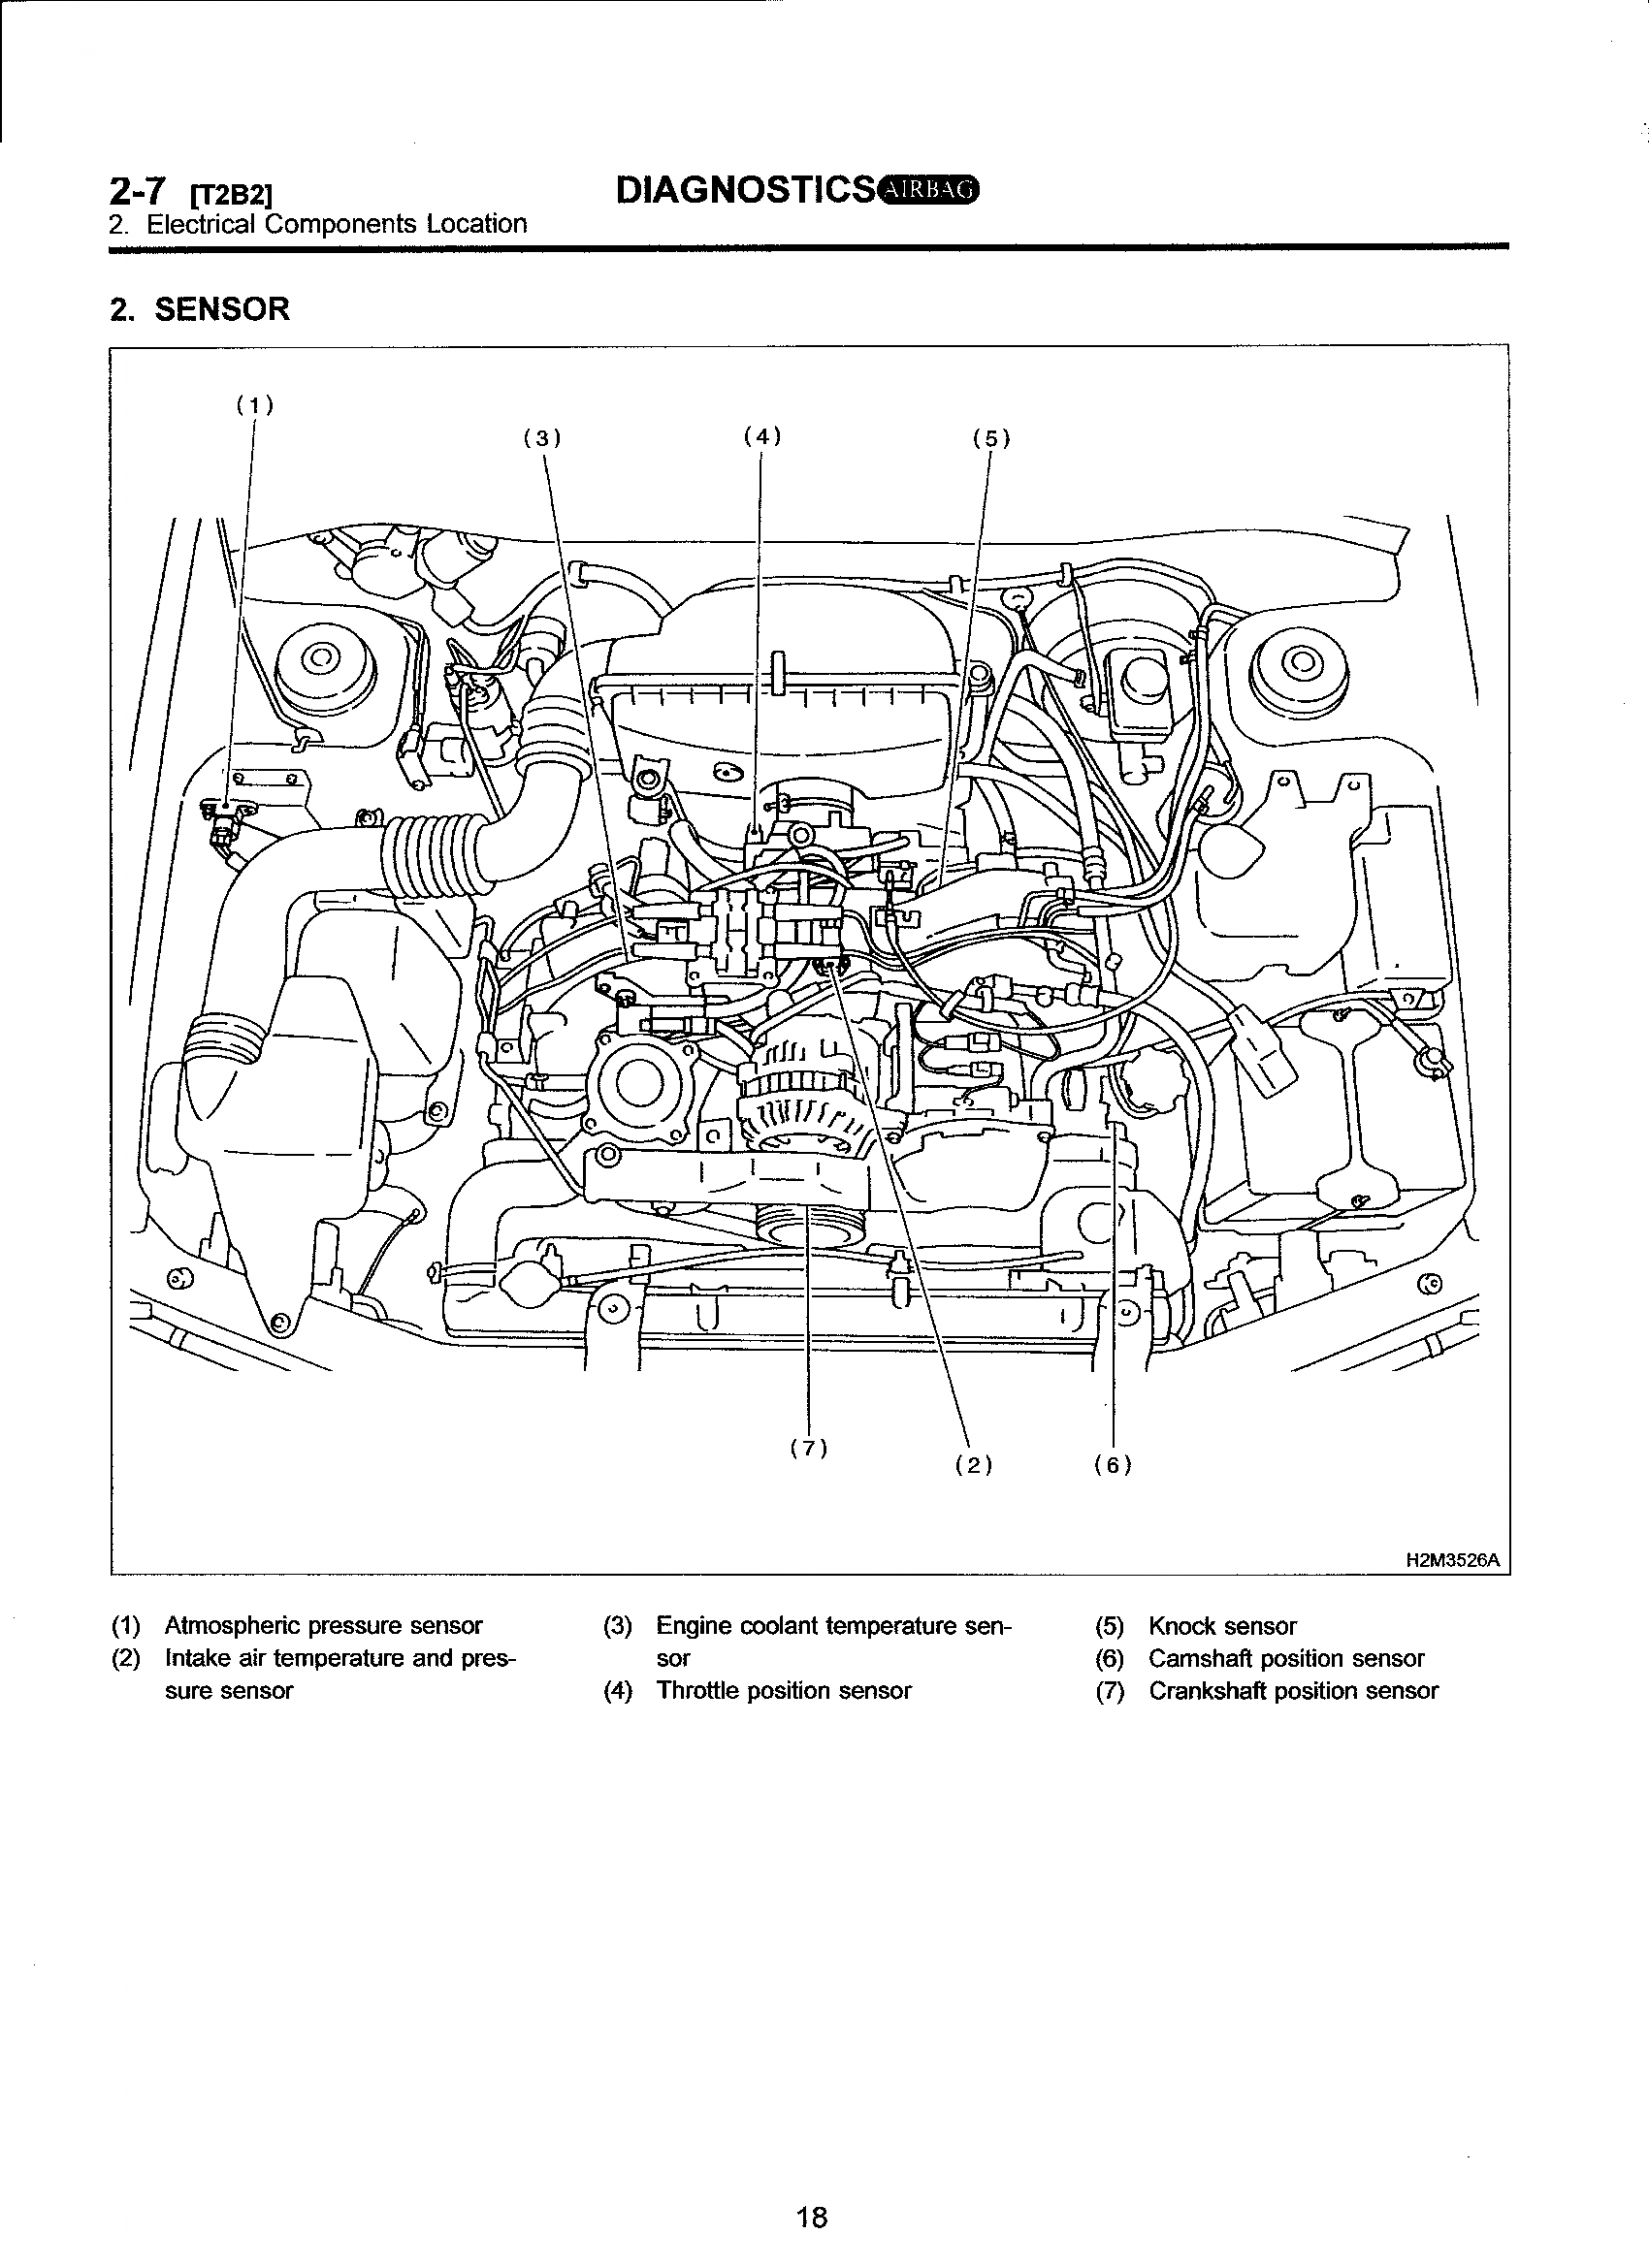 [DIAGRAM] 2008 Subaru Forester Boxer Engine Diagram FULL